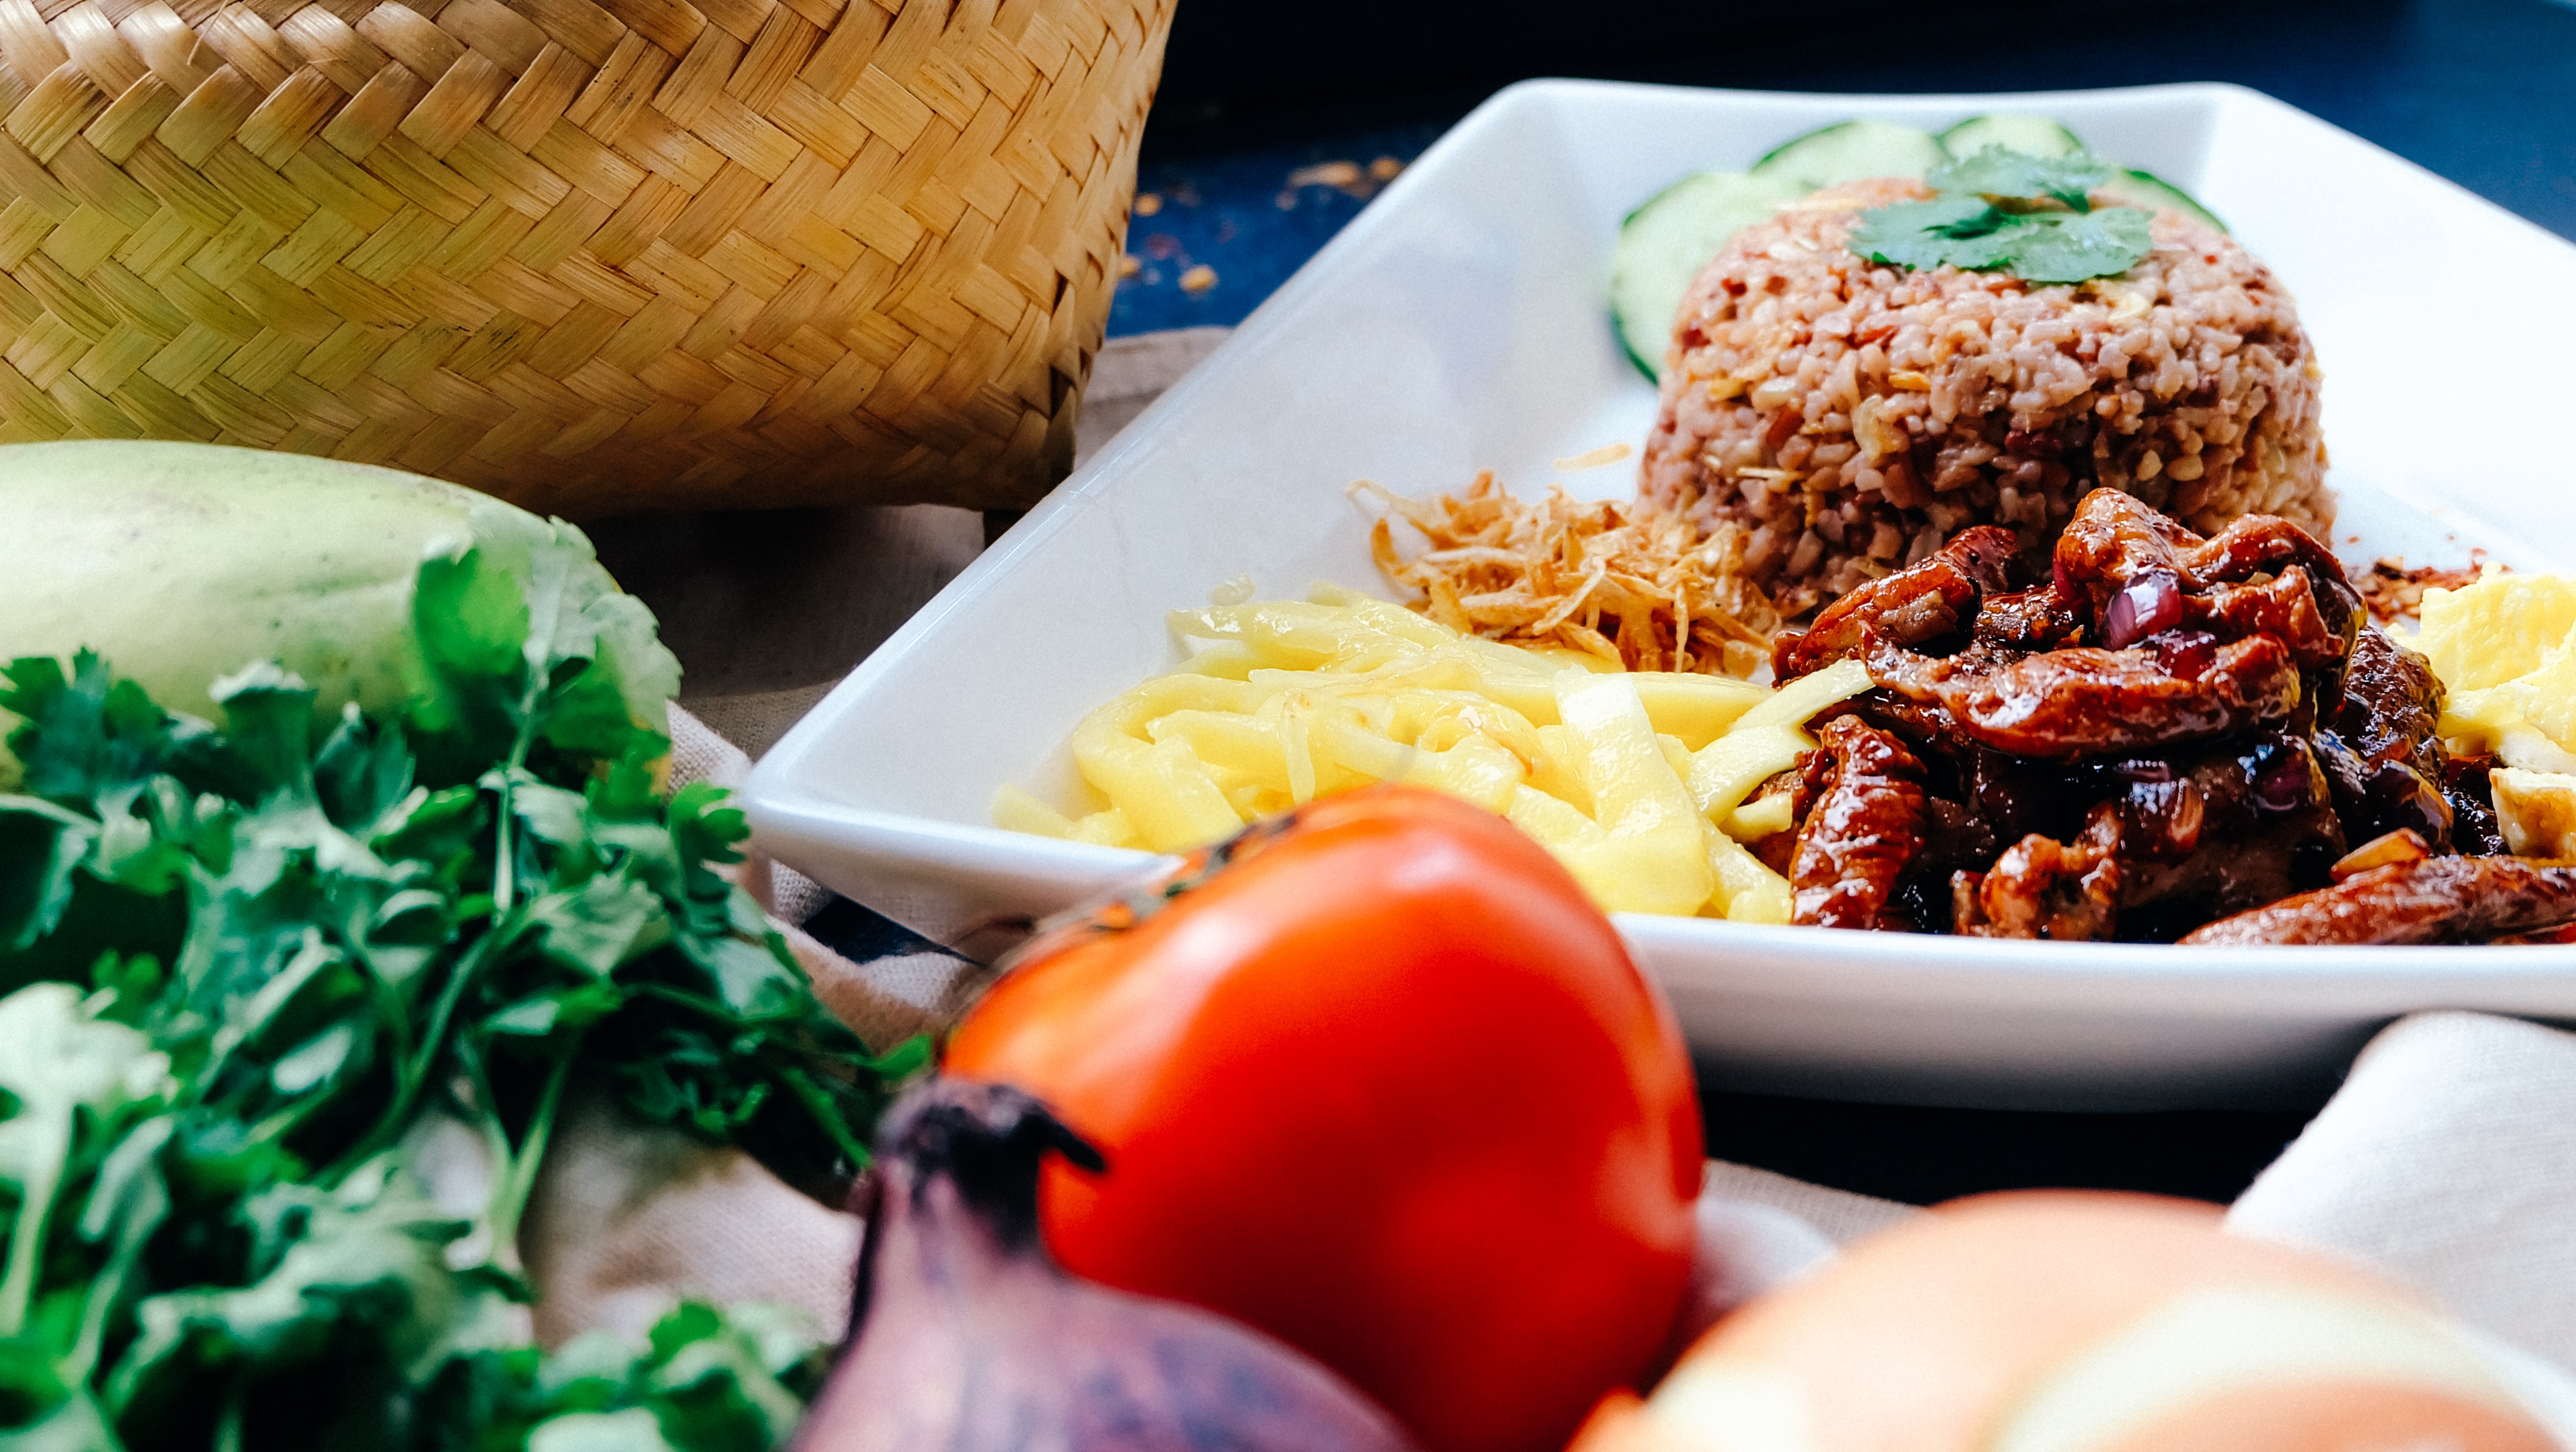 Rice, noodles, and, beef on a white plate with a tomato, onion, and herbs next to a whicker basket